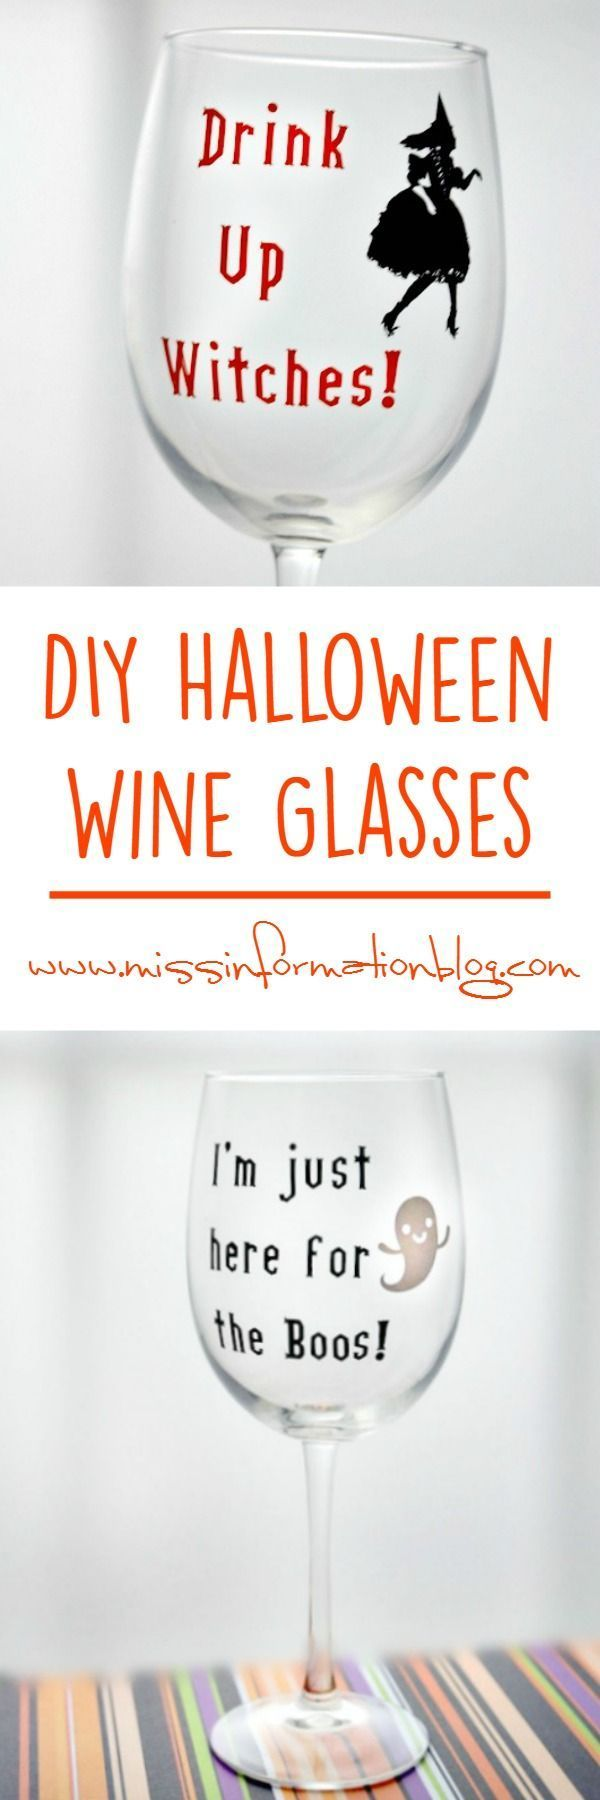 DIY these Halloween Wine Glasses using vinyl and a Cricut or Silhouette machine. I love these for a party or trick or treating! Pinning it to make for my friends.